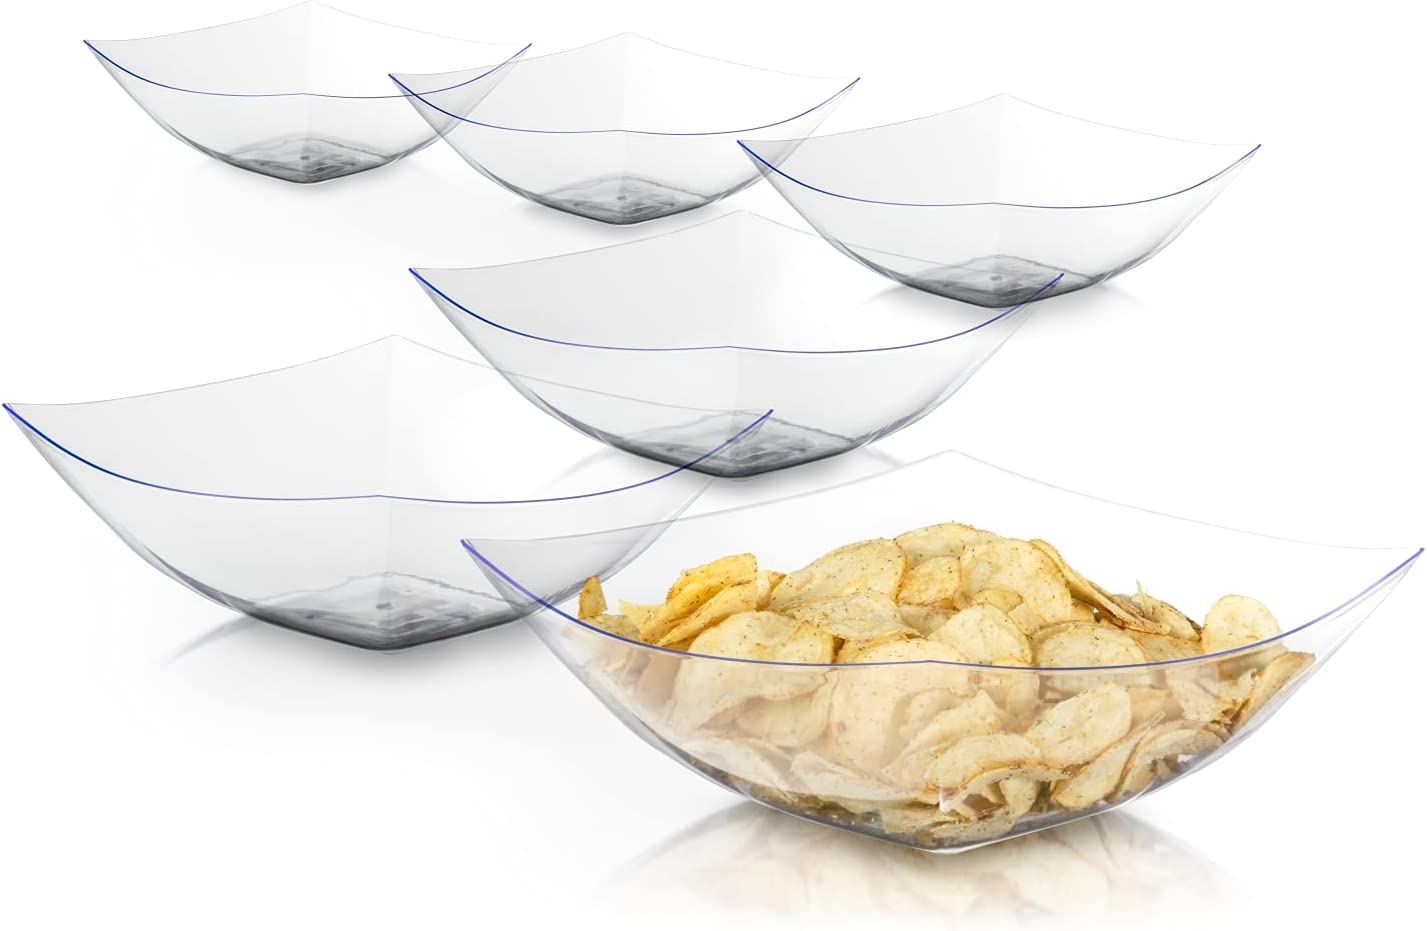 Exquisite Pack Of 6 Disposable Plastic Serving Bowls For Parties | 64 oz Clear Plastic Bowls For Parties I Disposable Serving Bowls For Salad Bar Buffet Containers | Small Serving Bowls For Candy